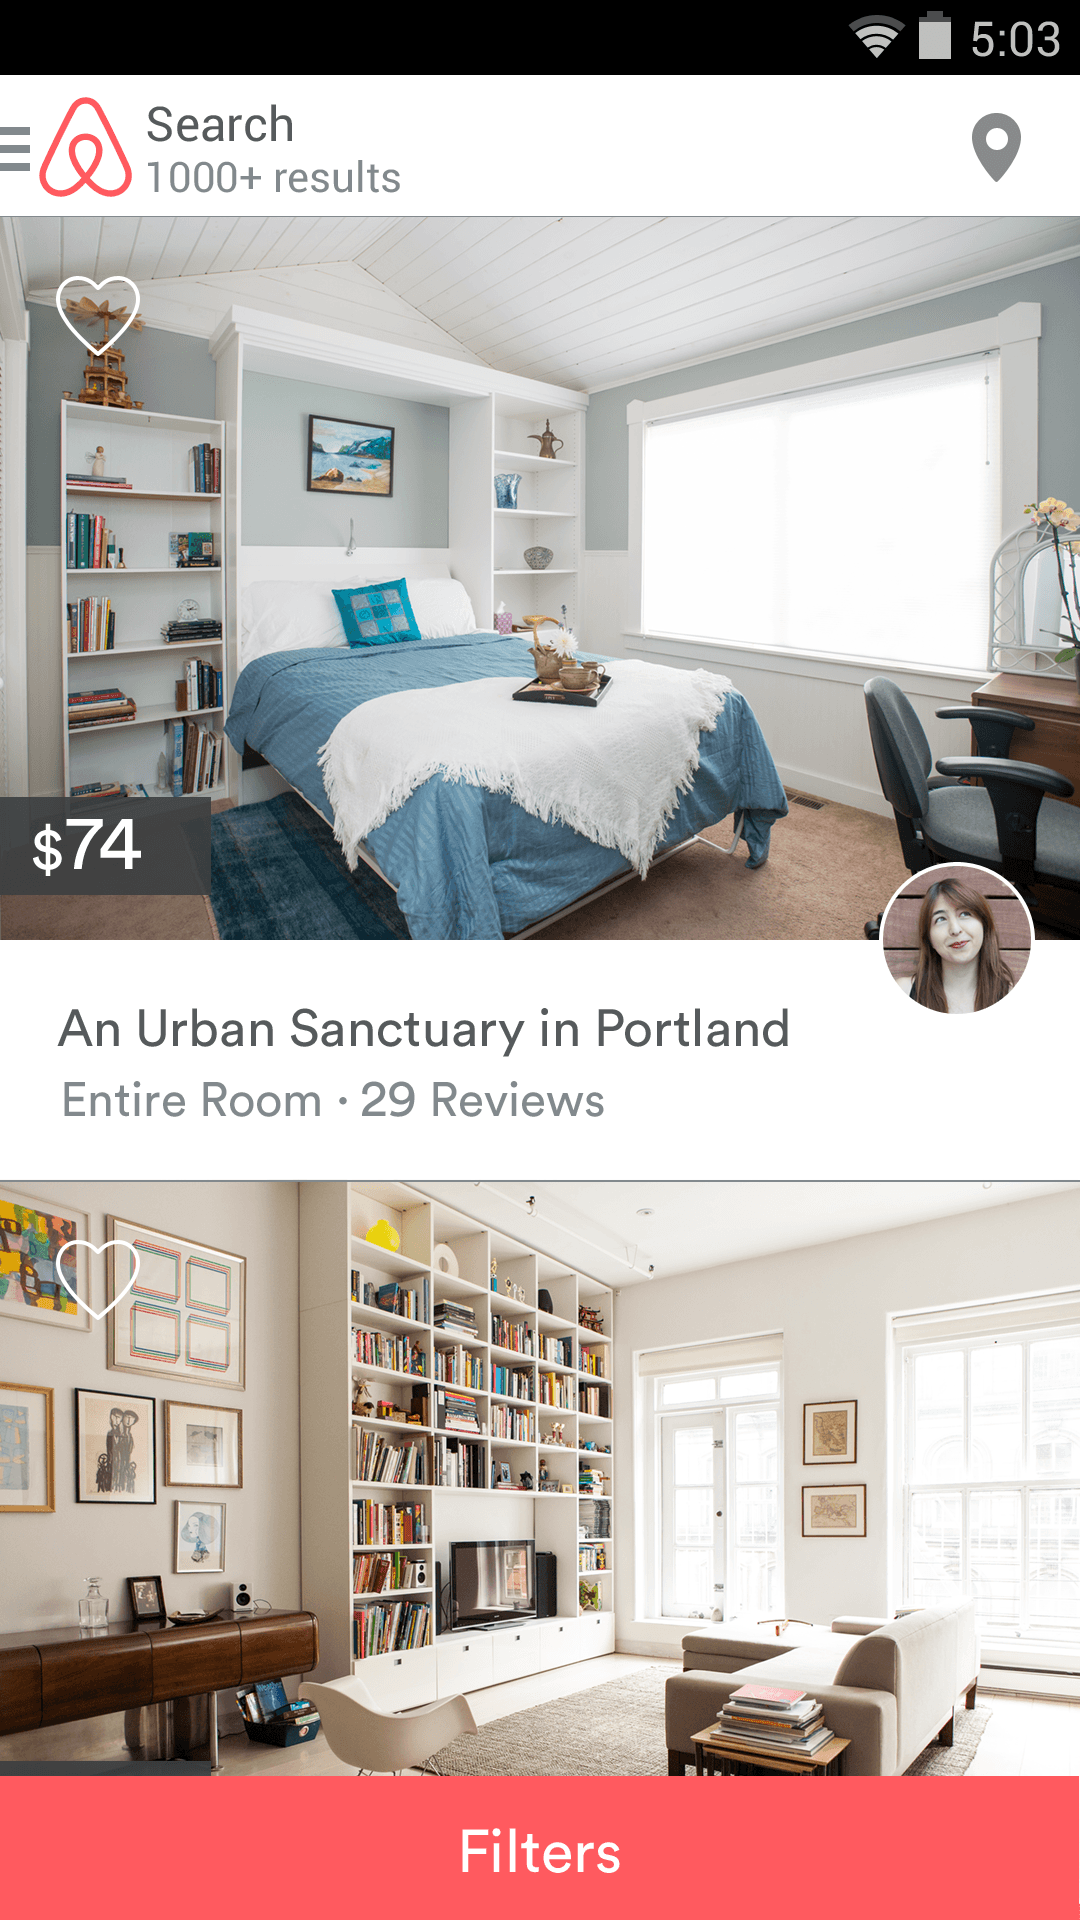 Airbnb: Amazon.co.uk: Appstore for Android